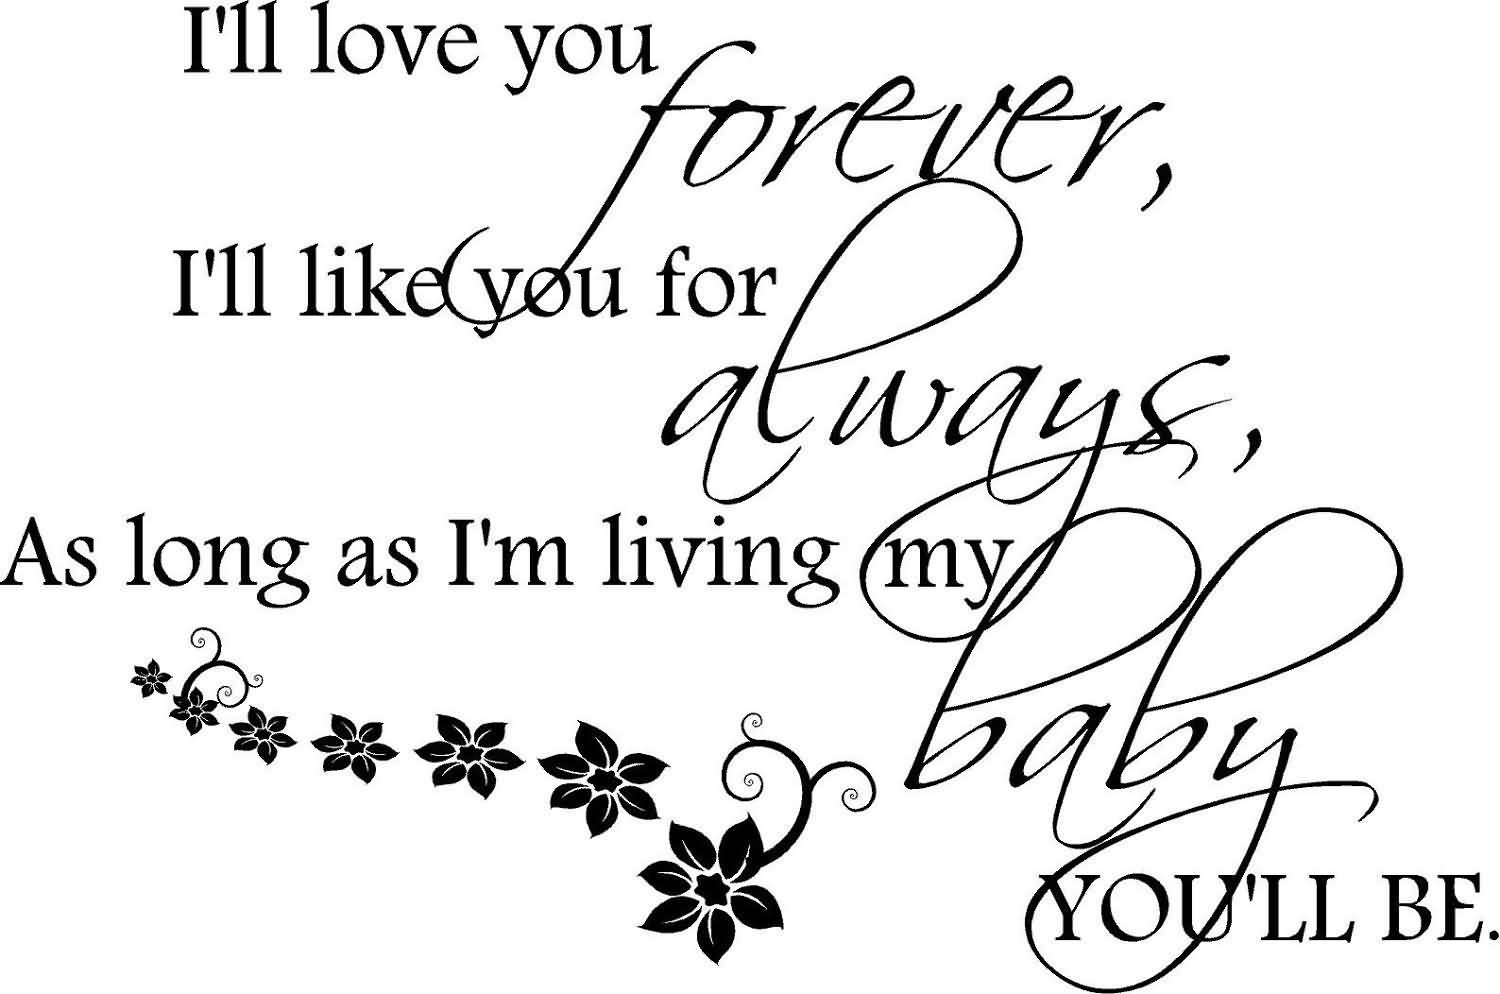 I Ll Love You Forever Book Quotes Alluring I Ll Love You Forever Book Quotes 05  Quotesbae